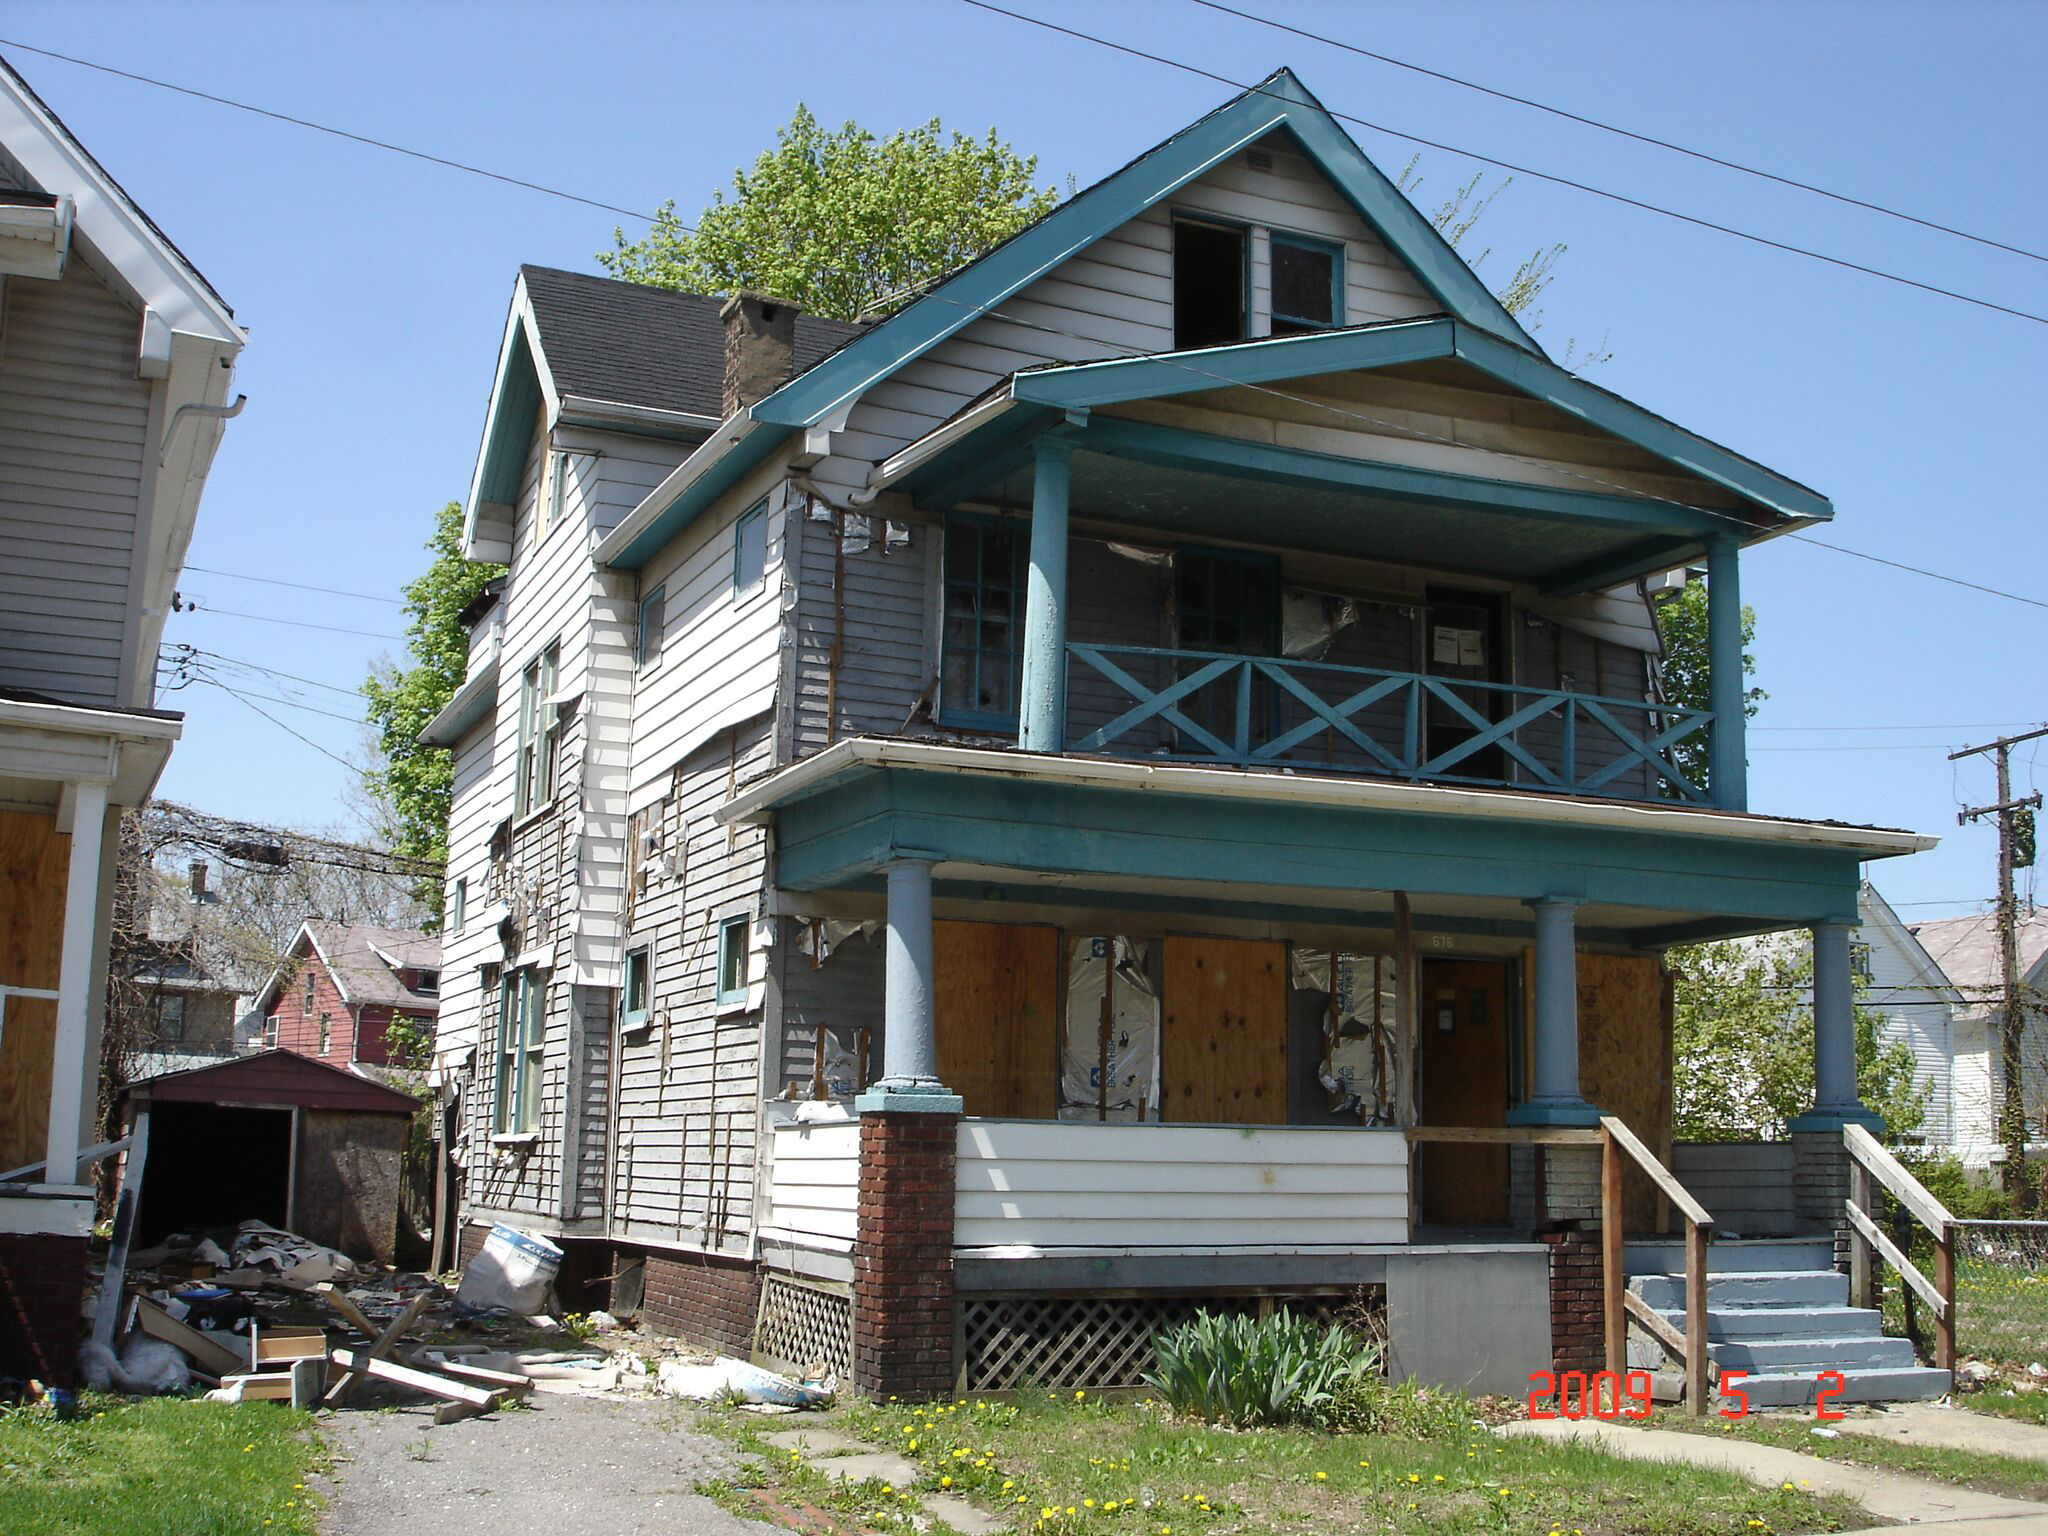 An abandoned home in Cleveland where the question lies: Should this home face demolition or renovation?